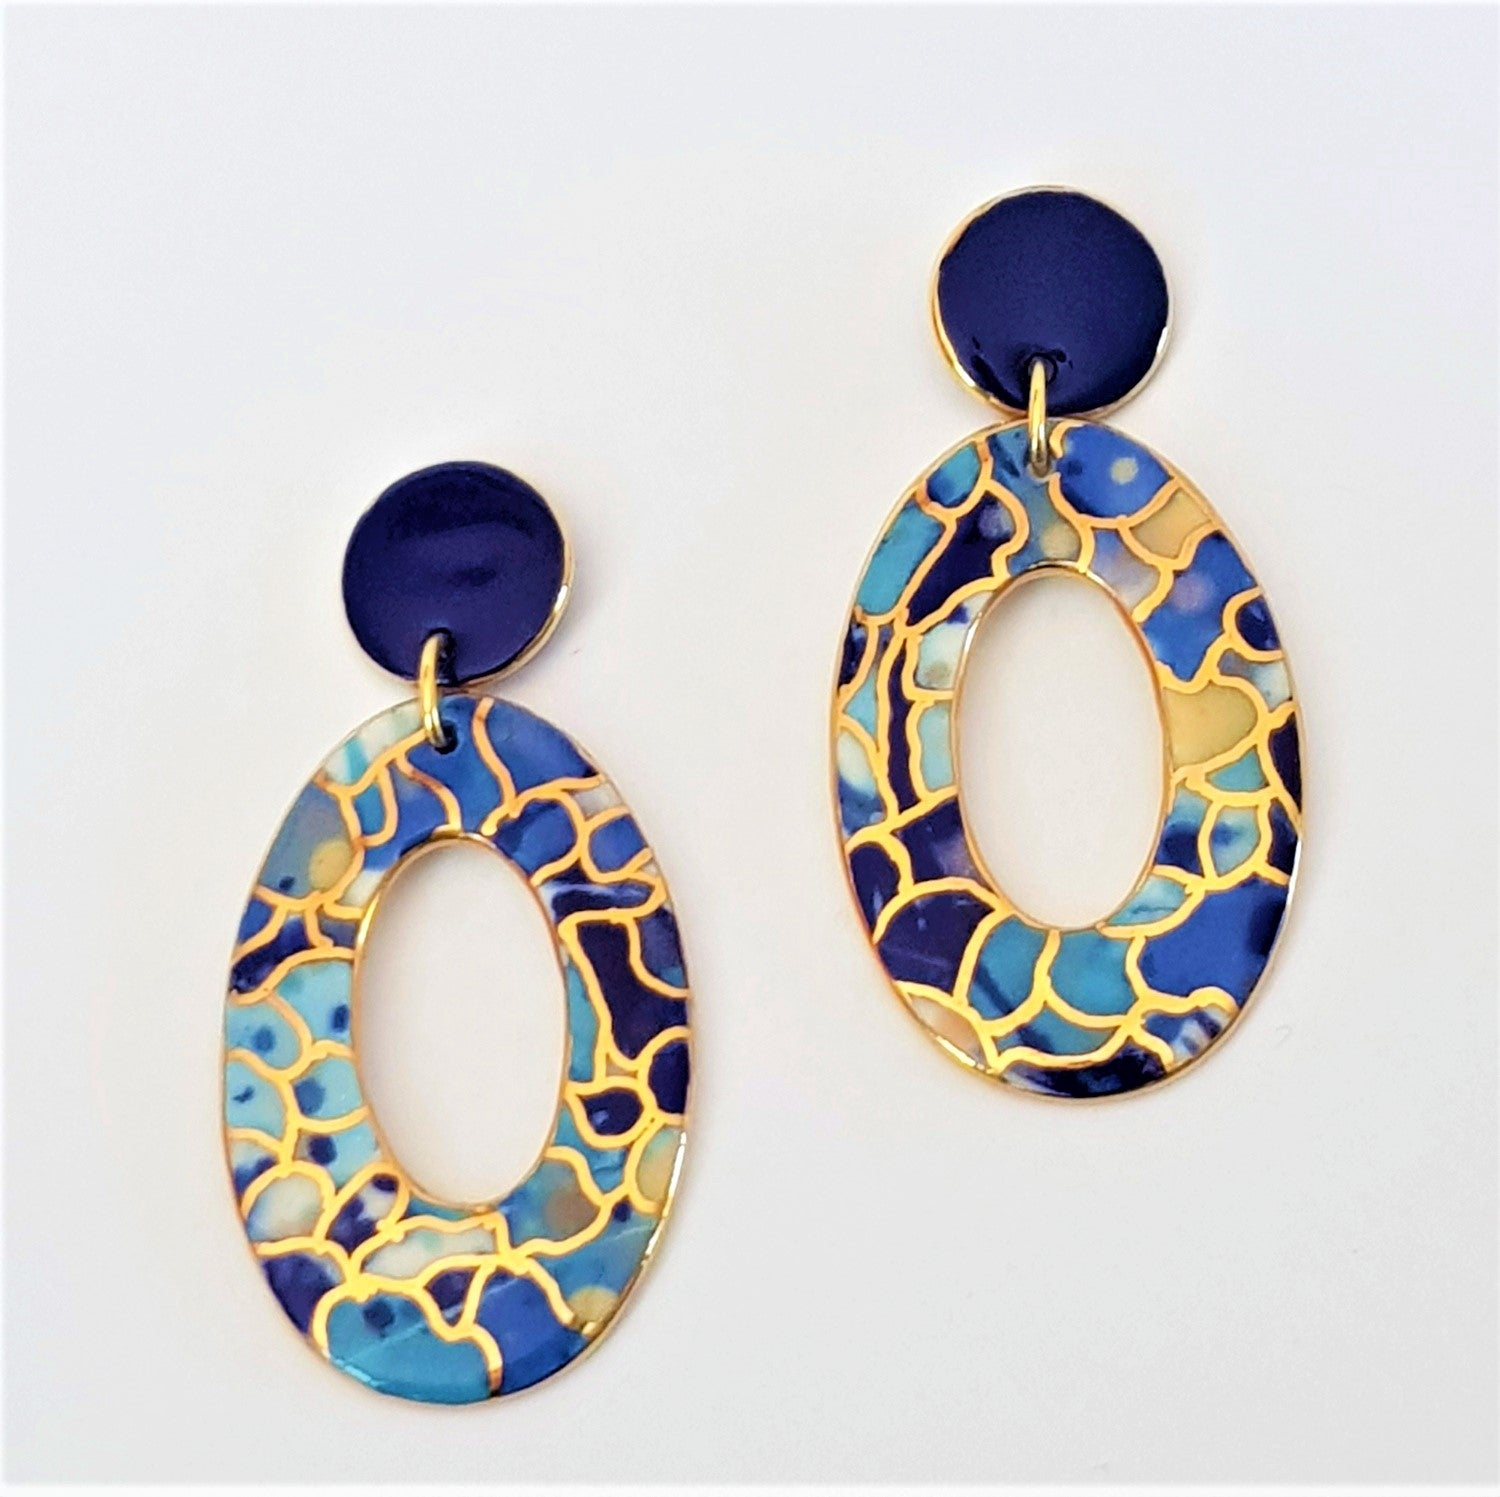 Porcelain stud top drop earrings in blues with gold highlights